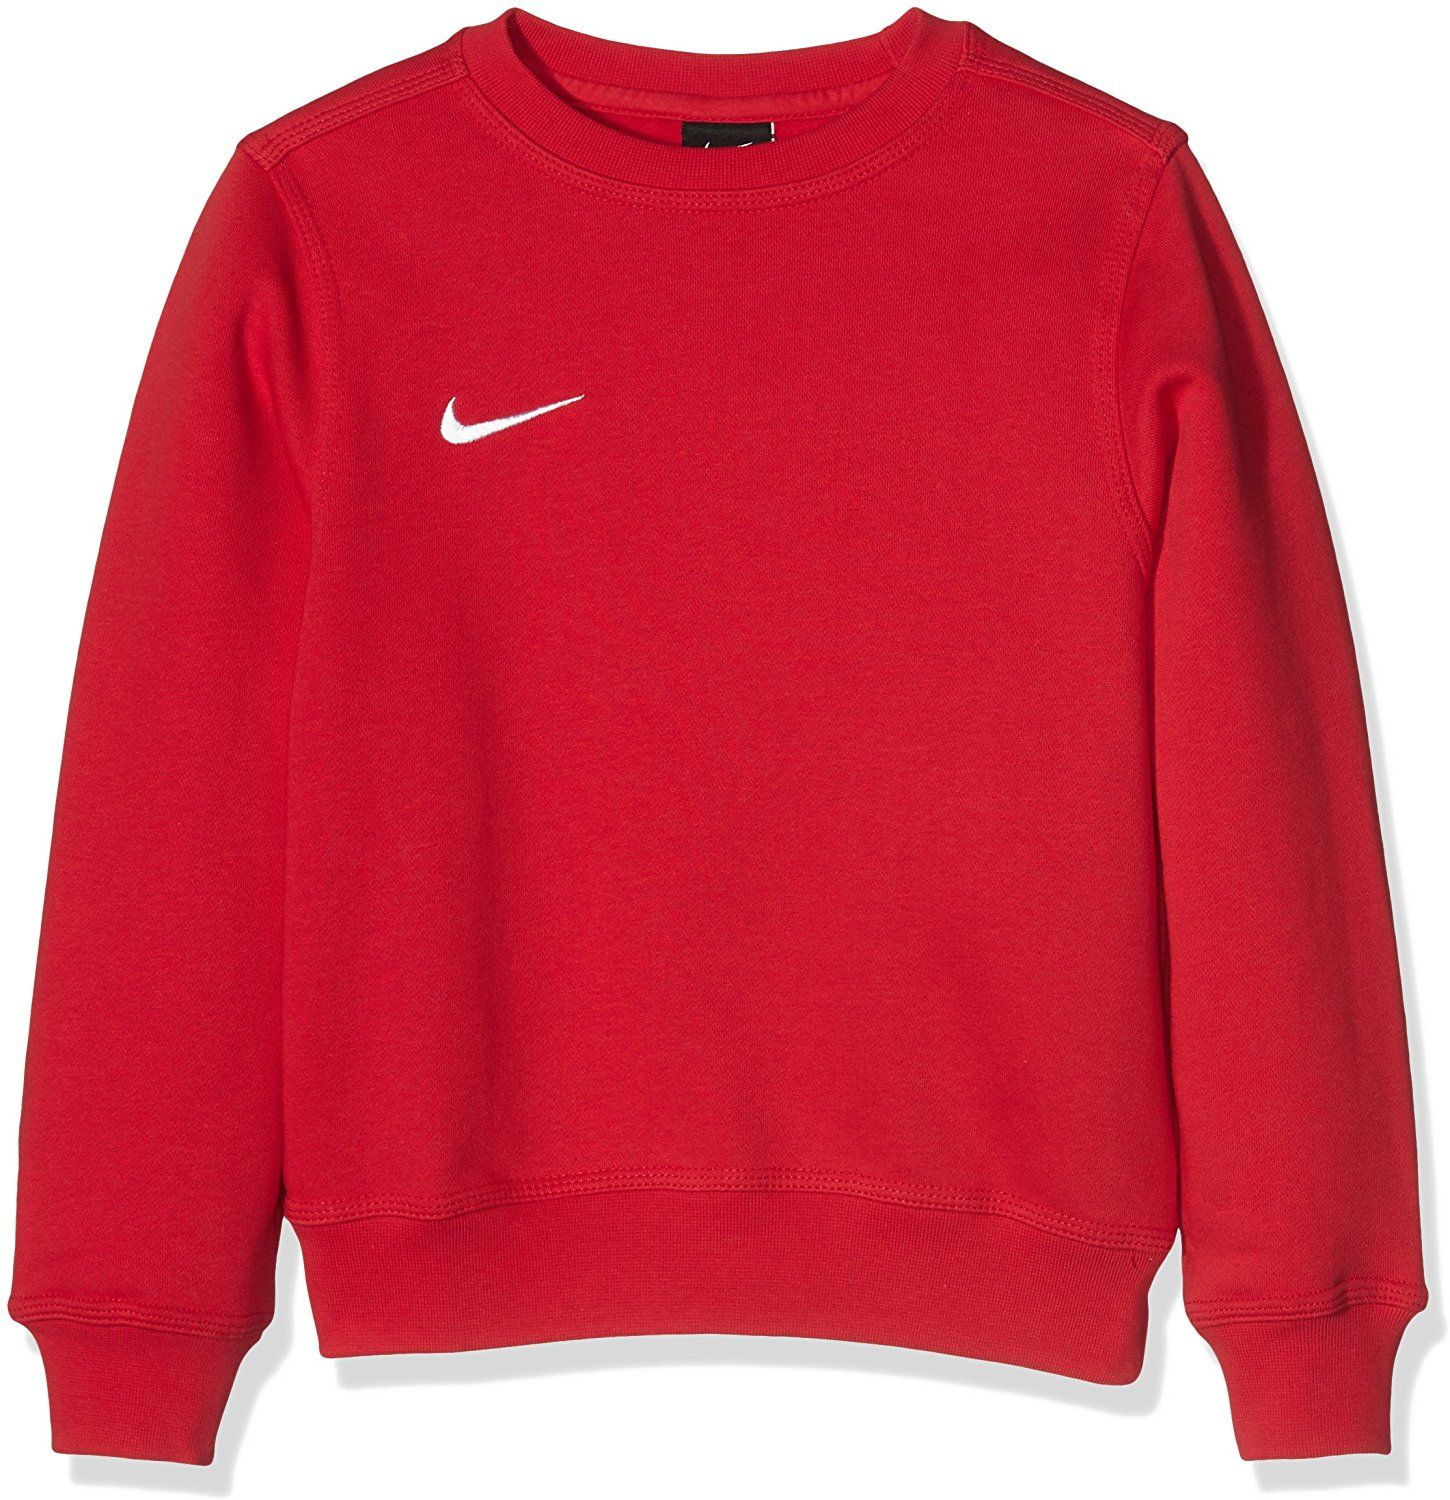 brand new bb533 ae324 Nike Pull à manches longues pour Enfant Mixte - Rouge (University Red Football  White) - XS (122-128 cm)  Amazon.fr  Sports et Loisirs